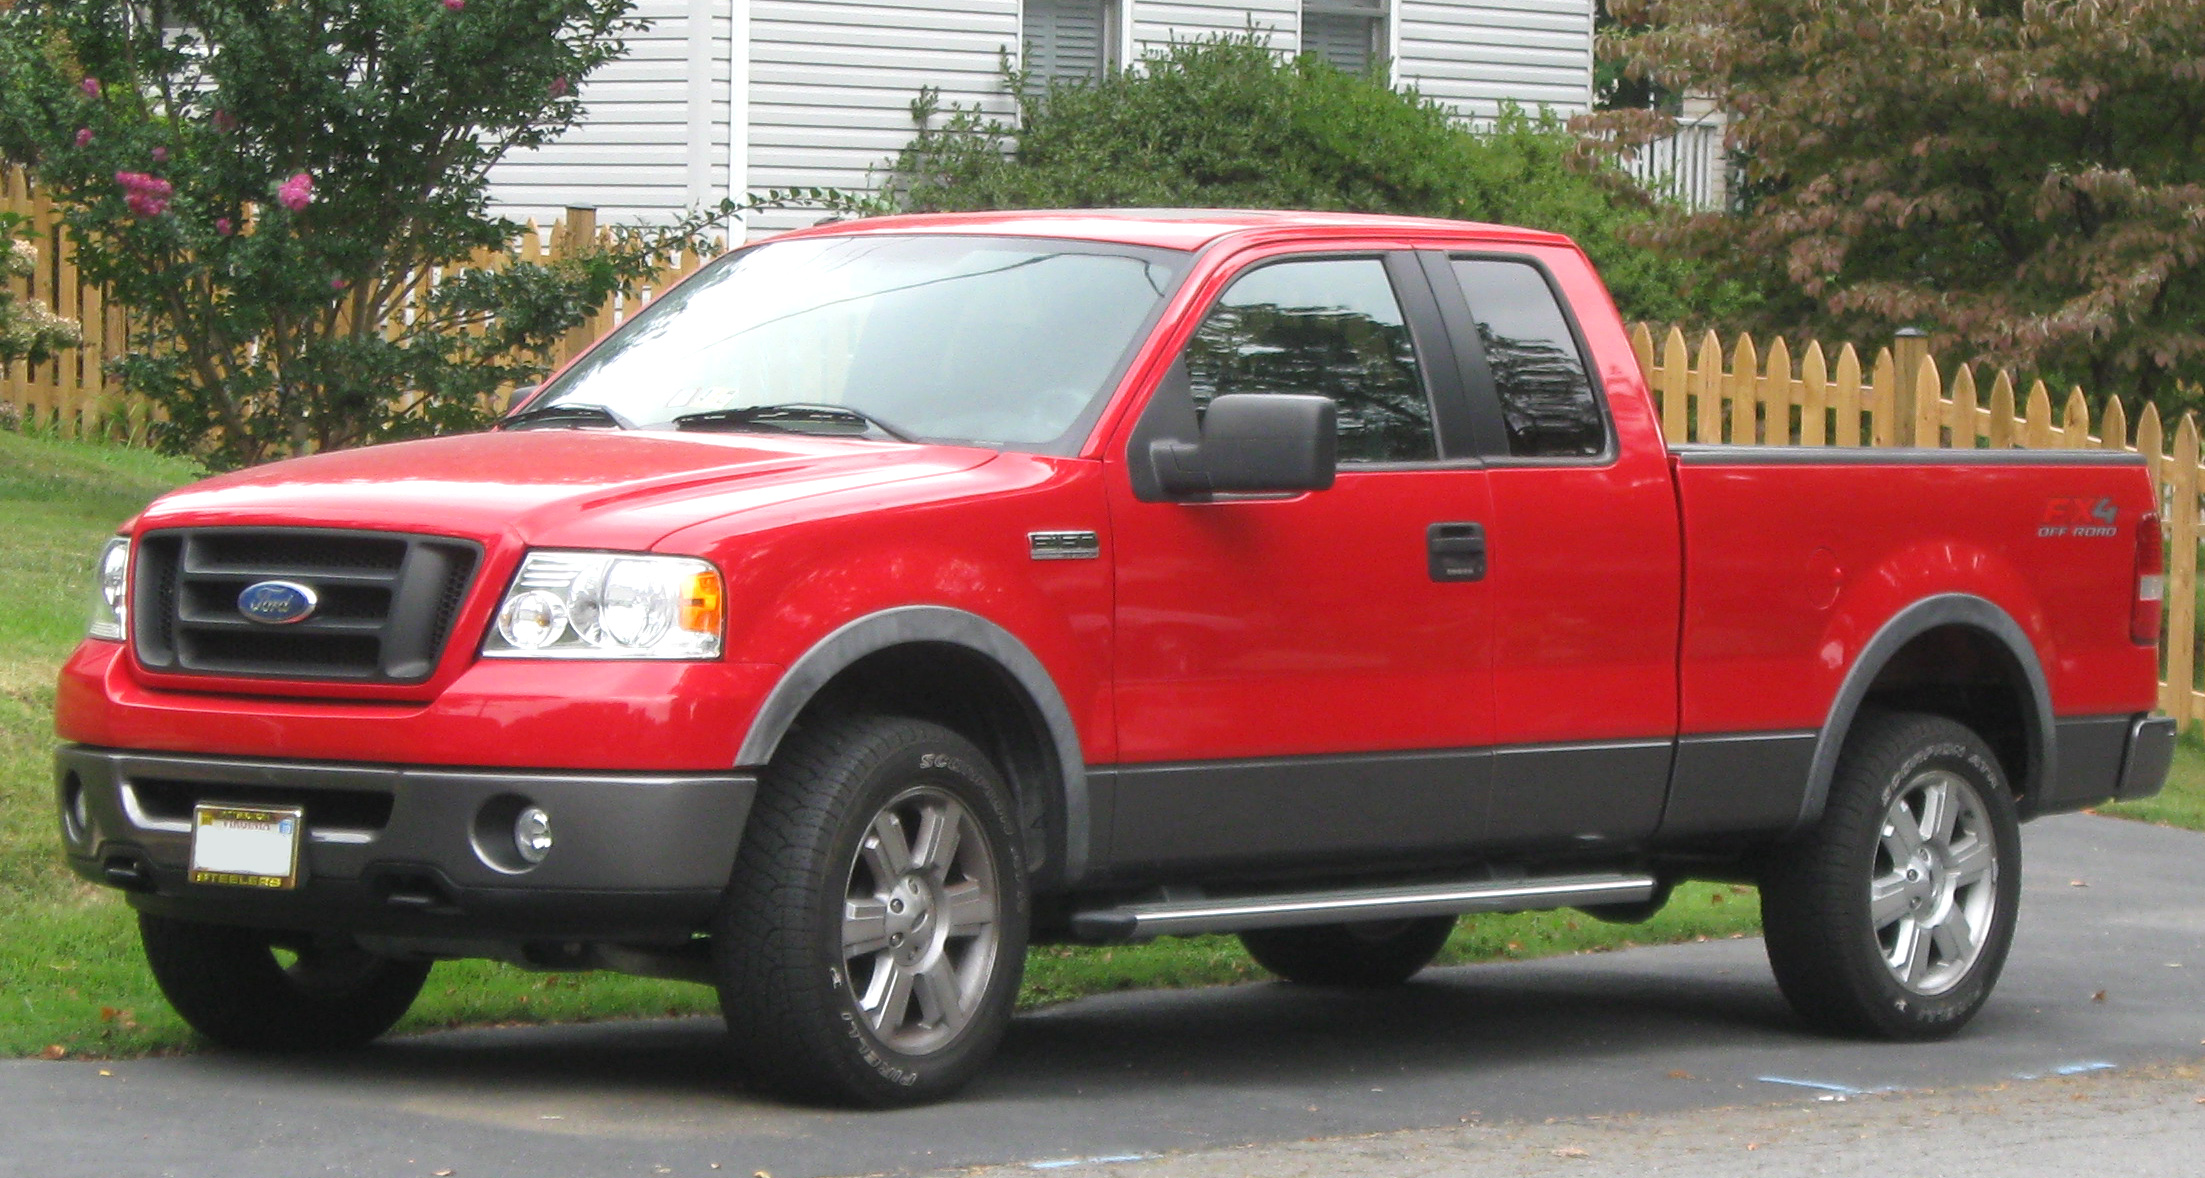 1999 F150 4 2 Engine Diagram | Wiring Liry  F Truck Wiring Diagram on f150 4x4 front end diagram, 1999 f150 will not start, 1999 f150 brochure, 1999 f150 cooling system, 1999 f150 clutch, 1999 f150 radiator, 2003 f150 wiring diagram, 1990 ford f-150 wiring diagram, 1999 f150 coil, 2002 f150 wiring diagram, 1999 f150 suspension, 2000 f150 wiring diagram, 1999 f150 thermostat, 94 f150 wiring diagram, 1989 f150 wiring diagram, f150 starter wiring diagram, 1999 f150 exhaust, ford f150 wiring diagram, 1998 f150 wiring diagram, 99 f150 wiring diagram,